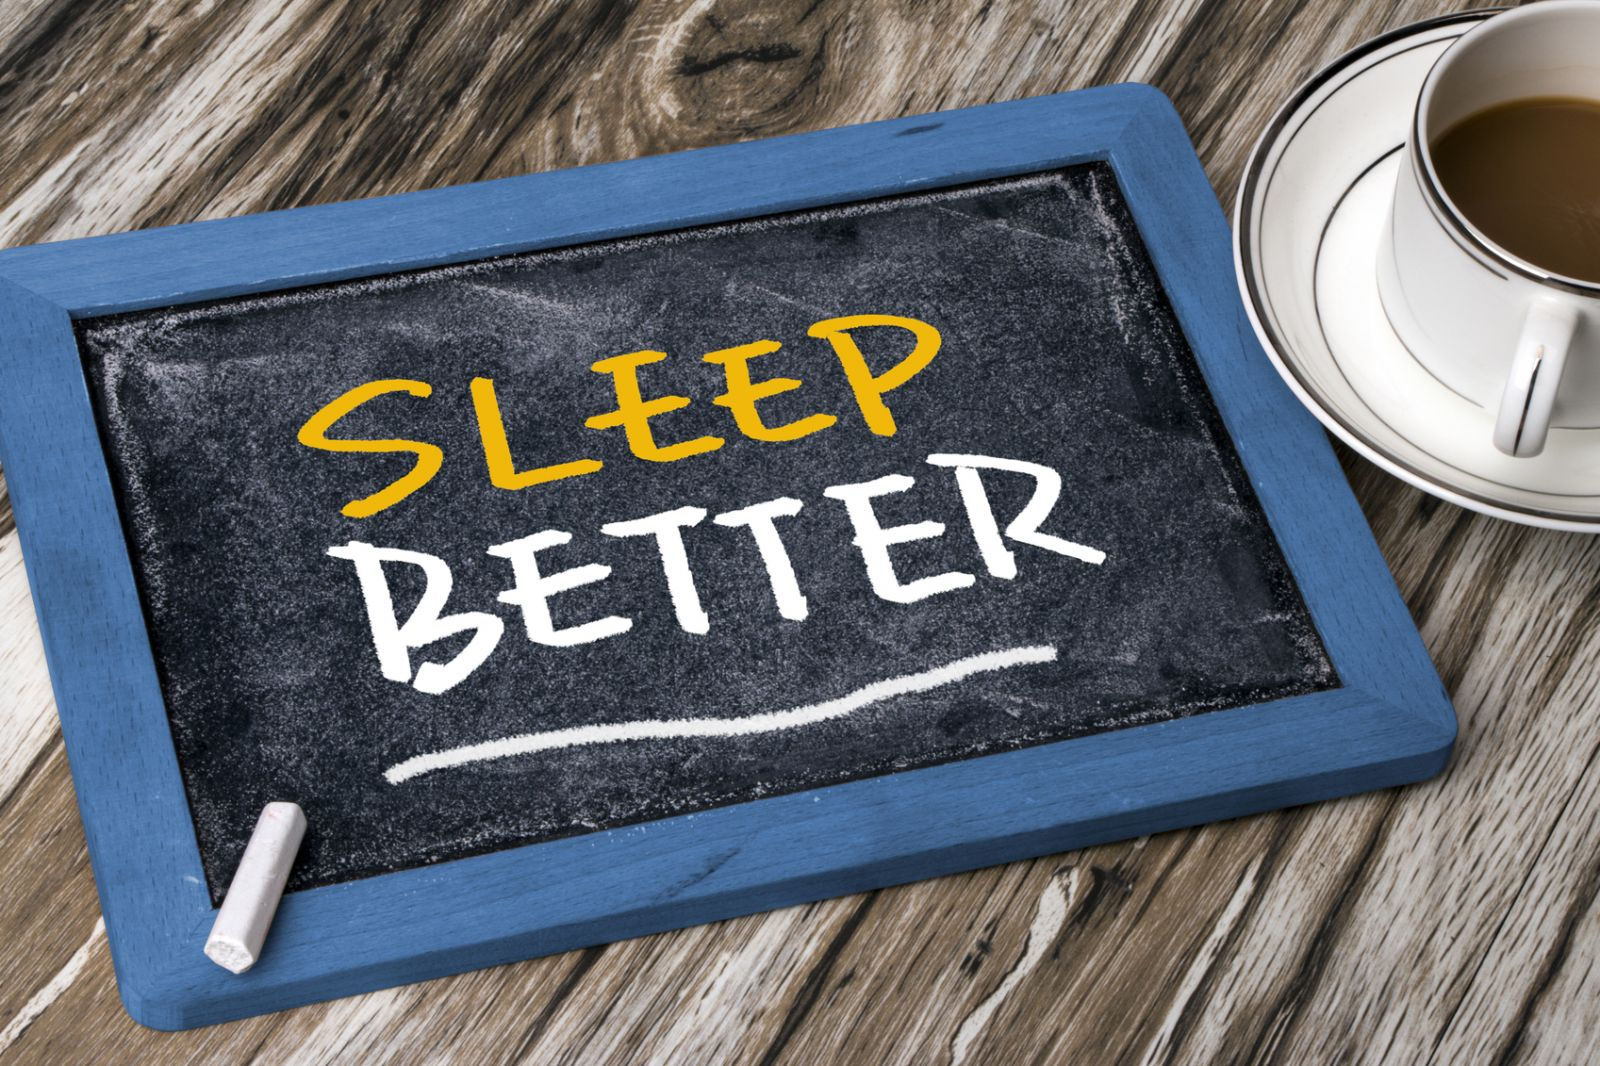 sleep-better-improving-cacaroot-iStock_62280108_MEDIUM